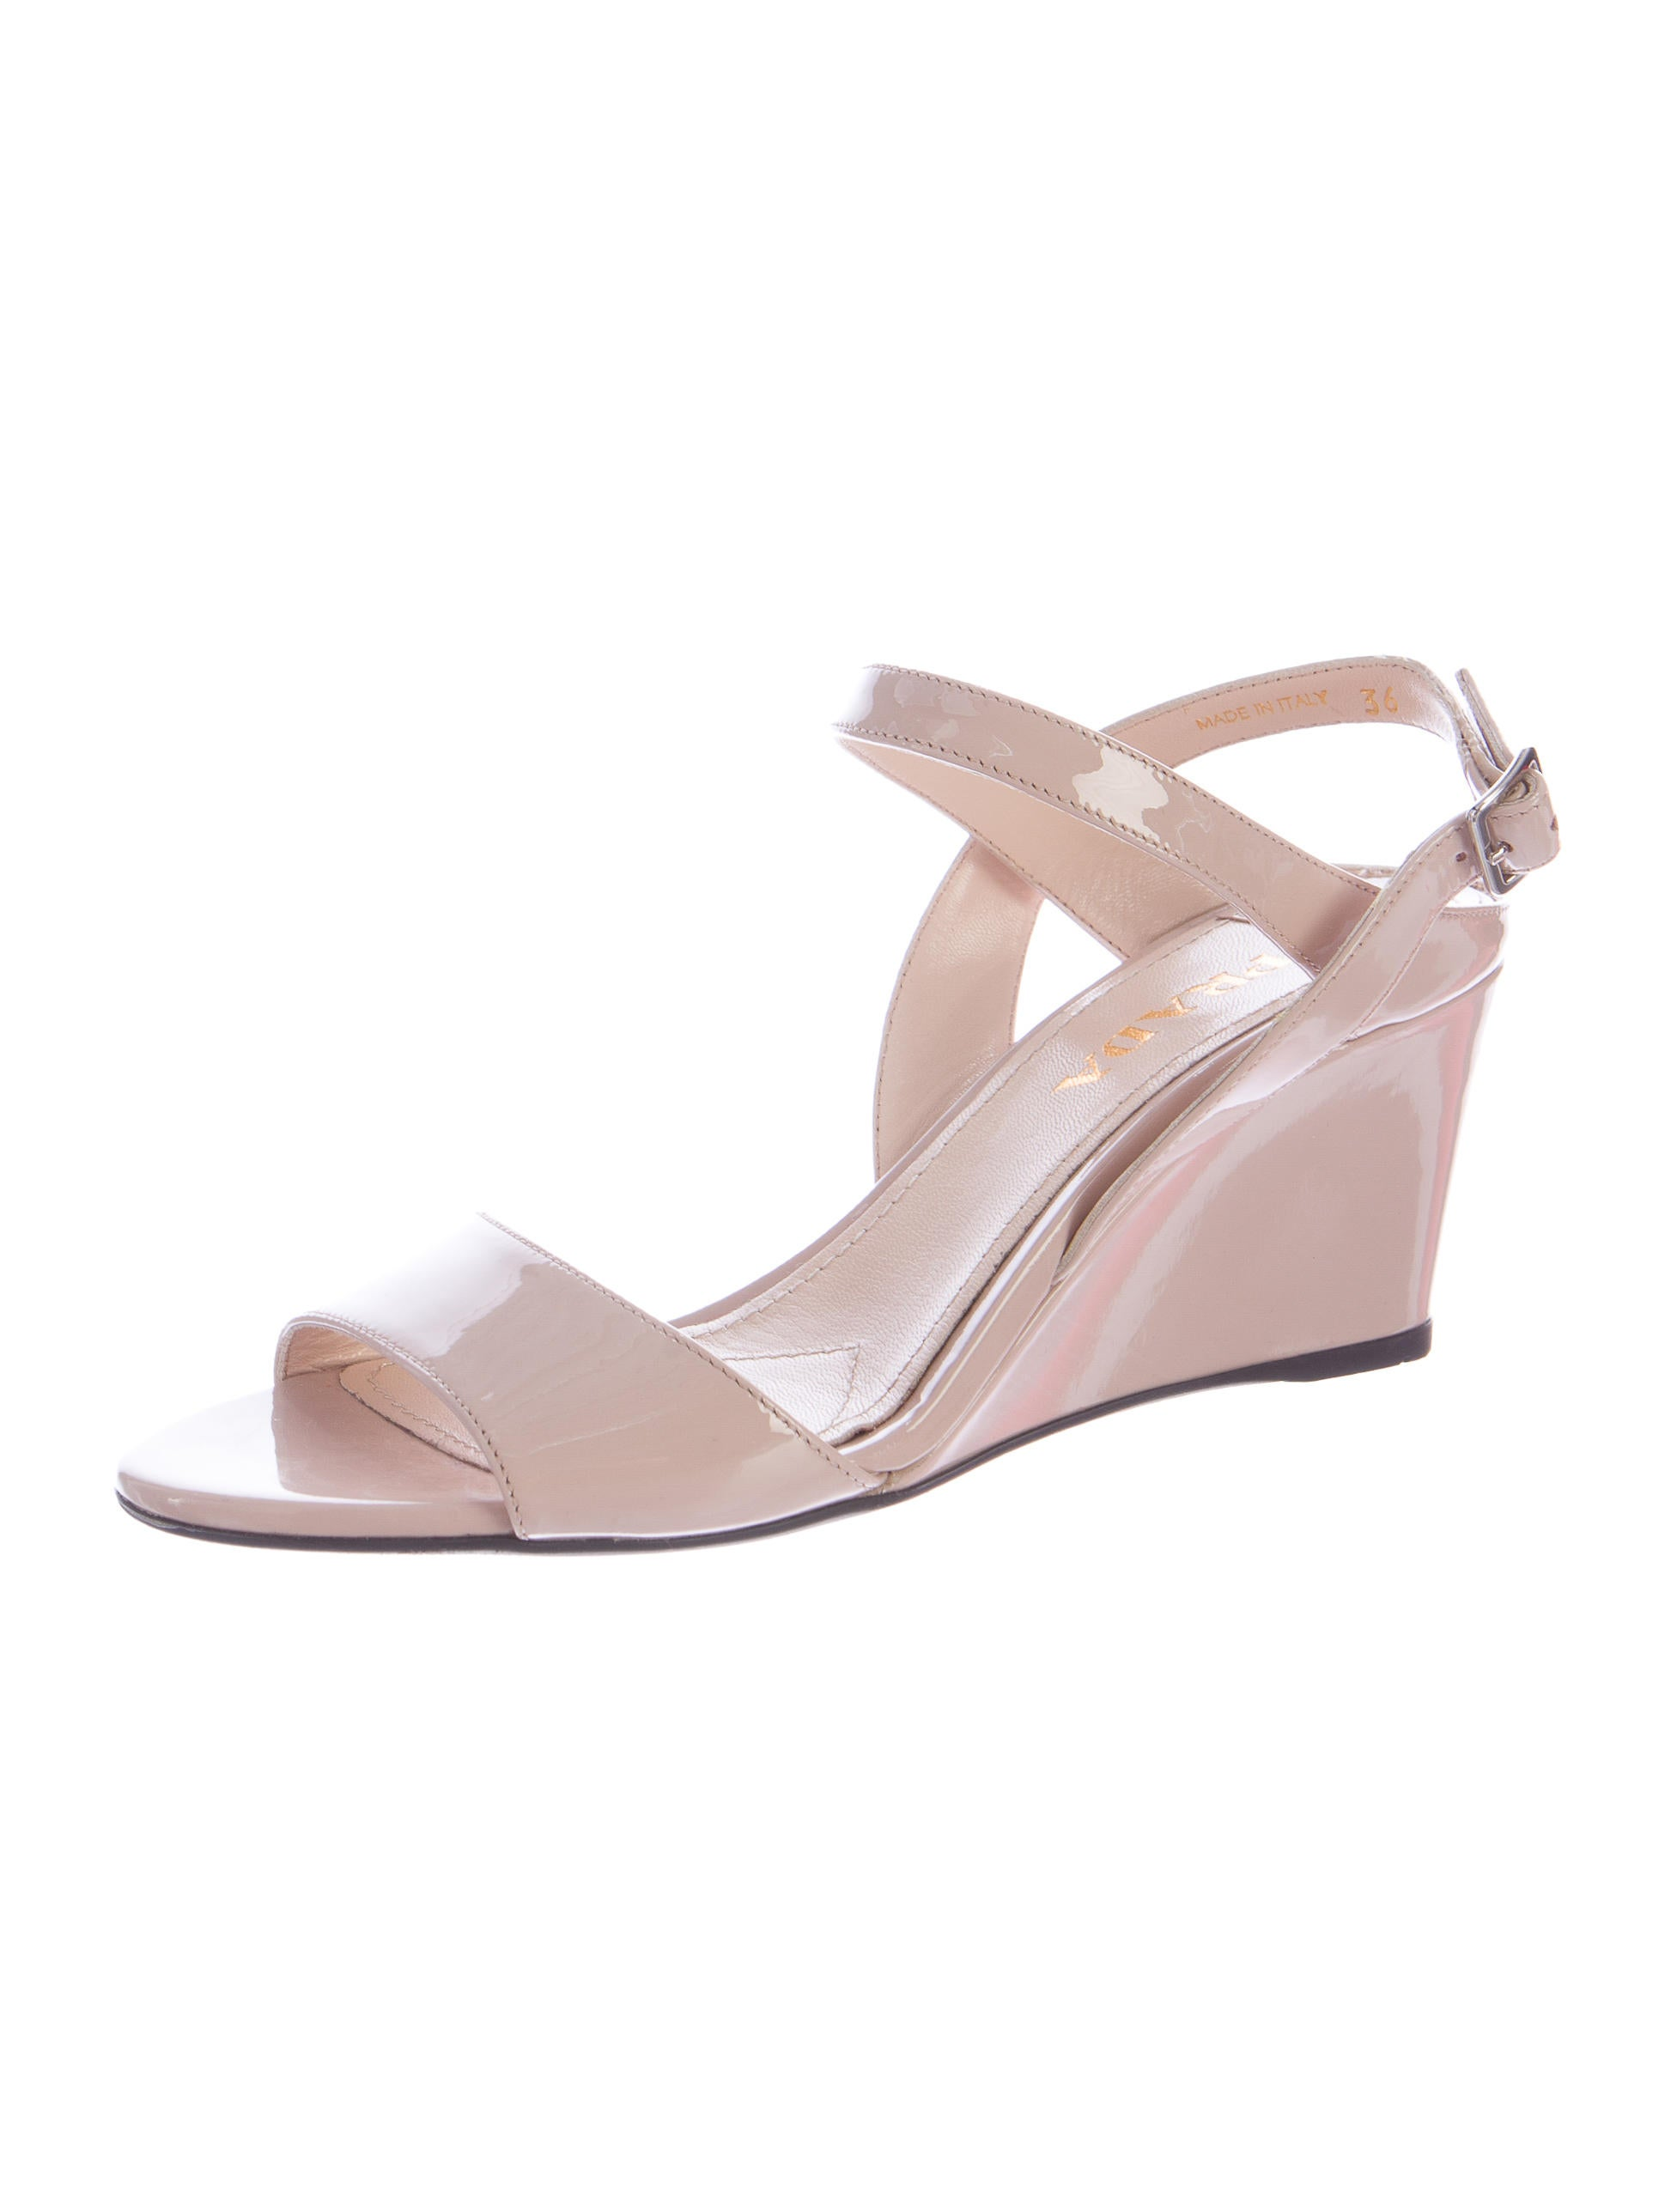 prada patent leather wedge sandals shoes pra99295